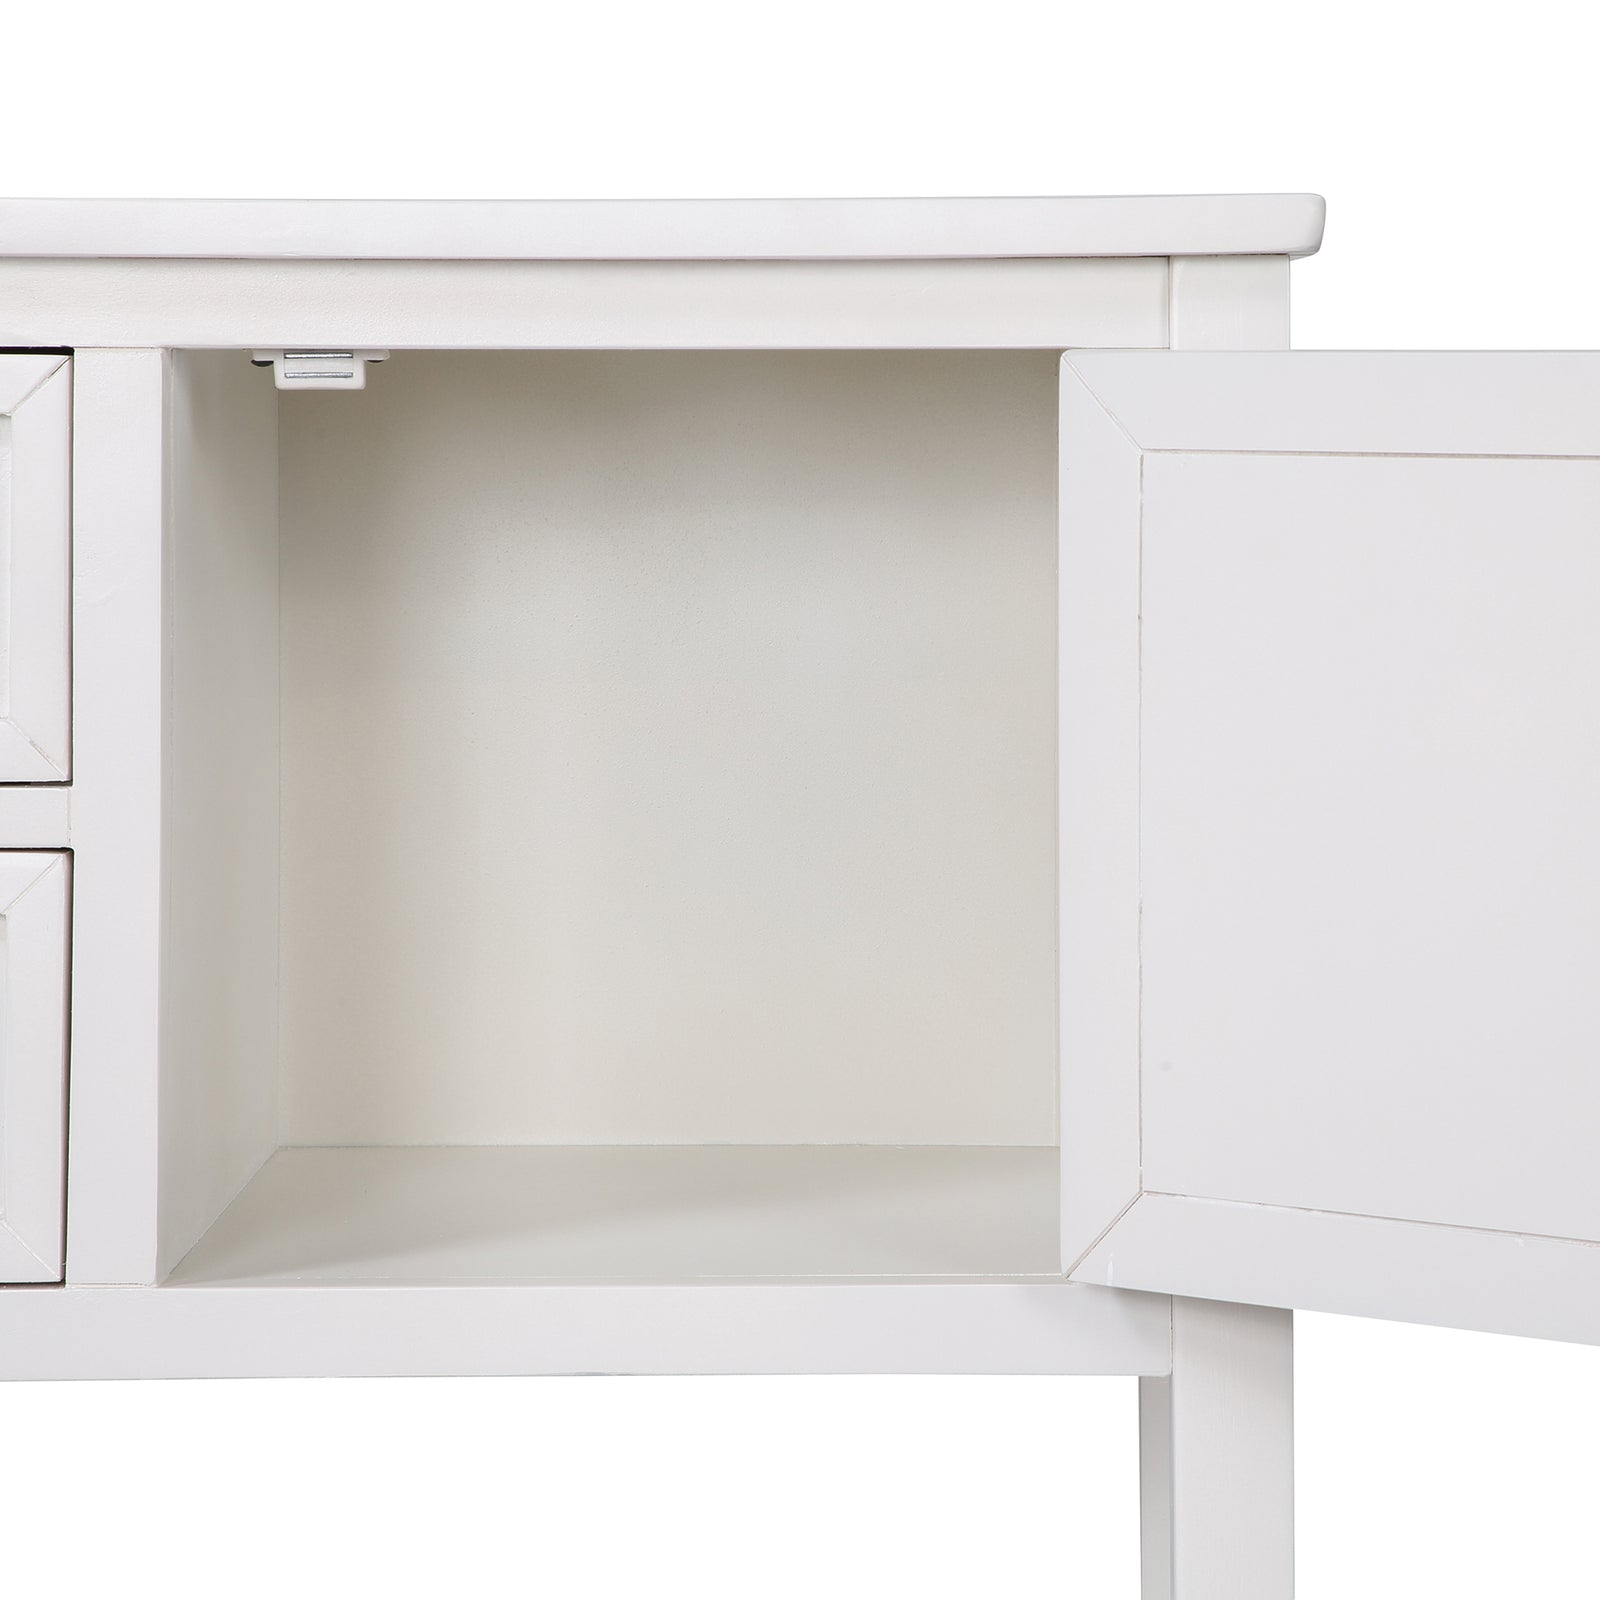 Light Gray Console Table Sideboard with Shutter Doors Two Storage Drawers and Bottom Shelf BH196438